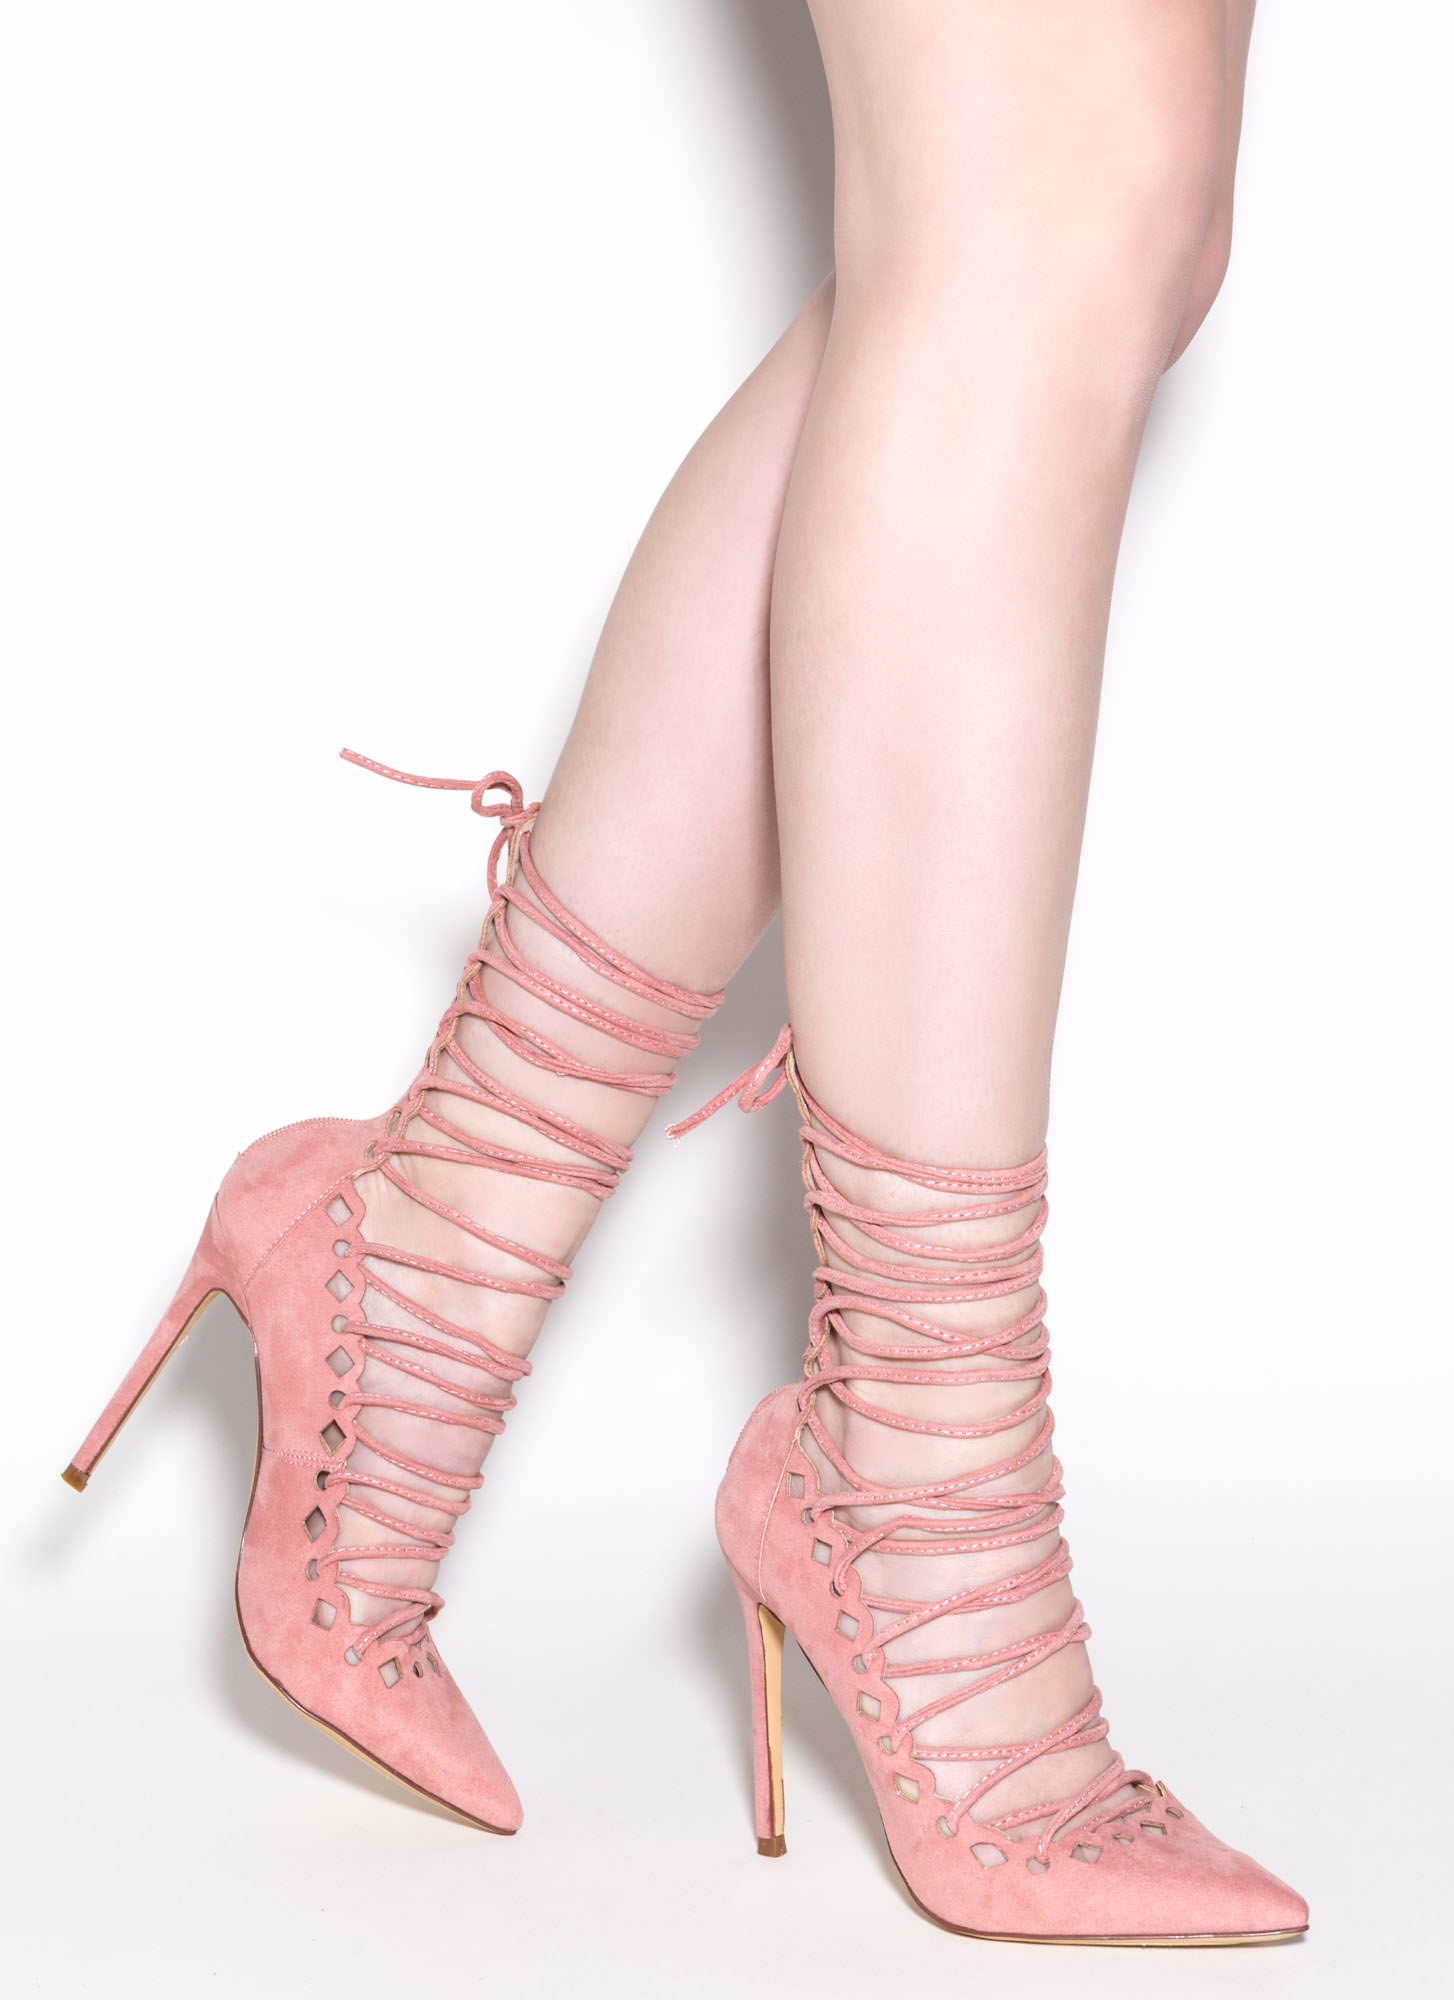 In Between Lace-Up Heels PINK